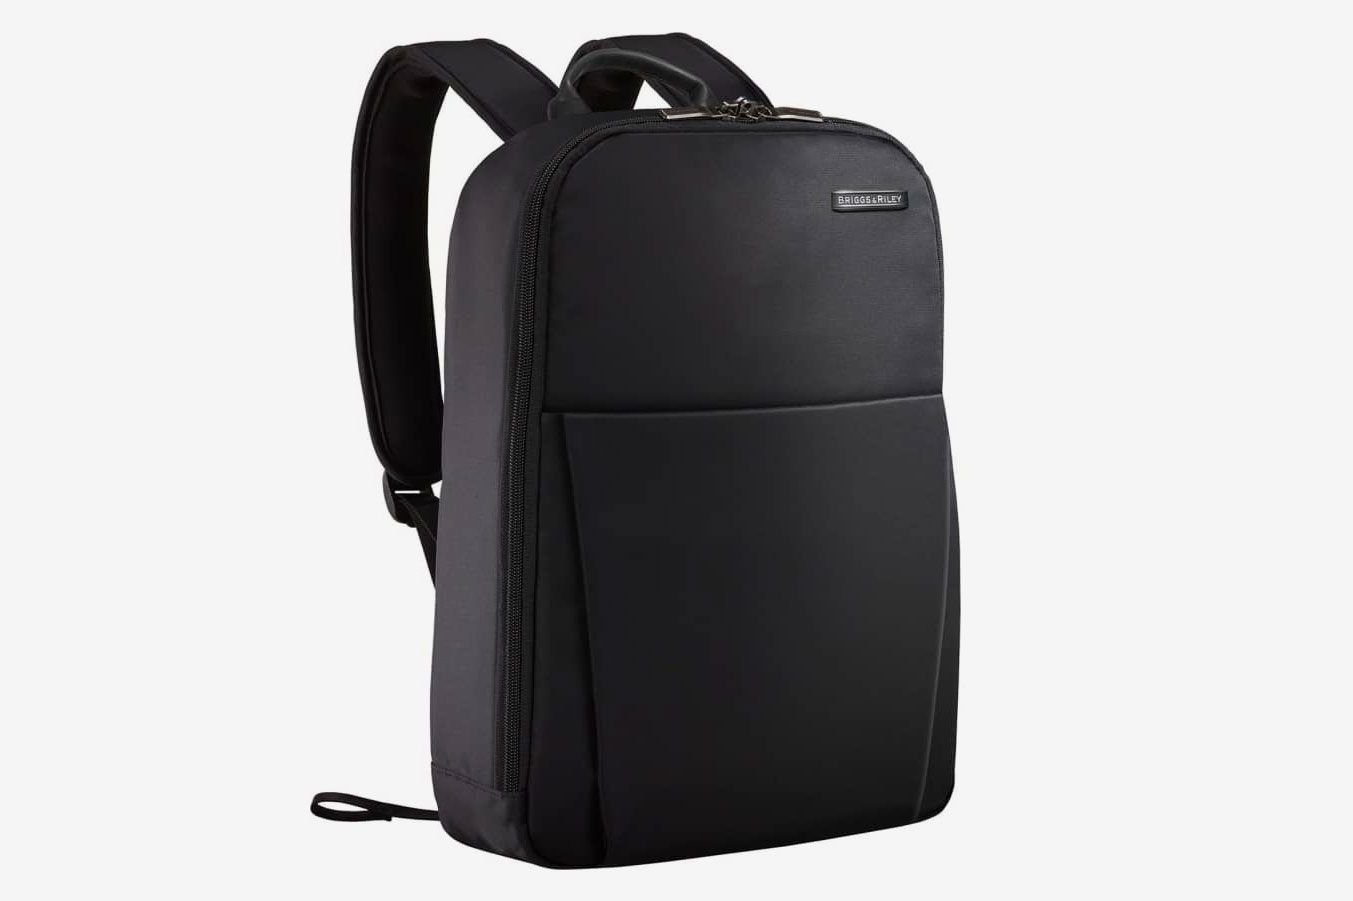 8 Best Backpacks for College Students 2018 7513c9cbace25